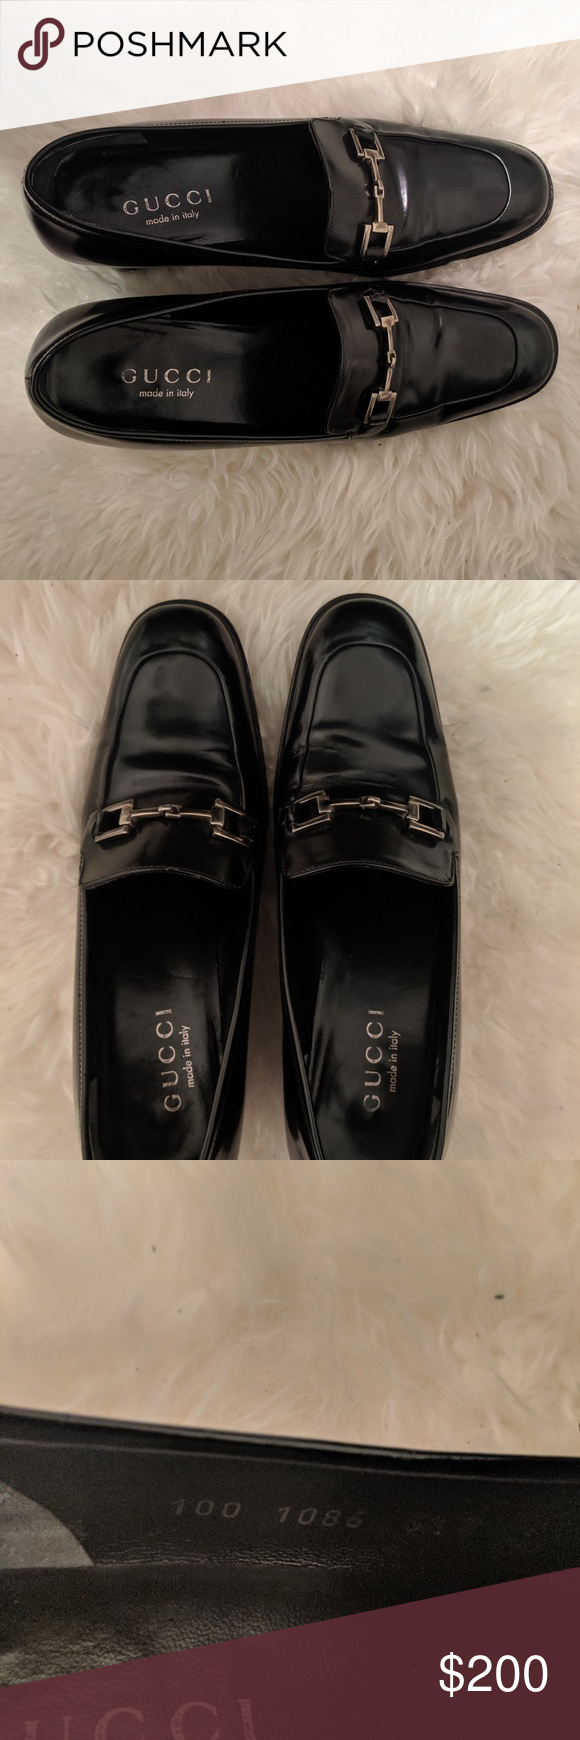 AUTHENTIC GUCCI LOAFERS in black patent leather AUTHENTIC PATENT LEATHER GUCCI LOAFERS size 5 12 B but would best fit a size 6 In nearly new condition only worn twice Lig...